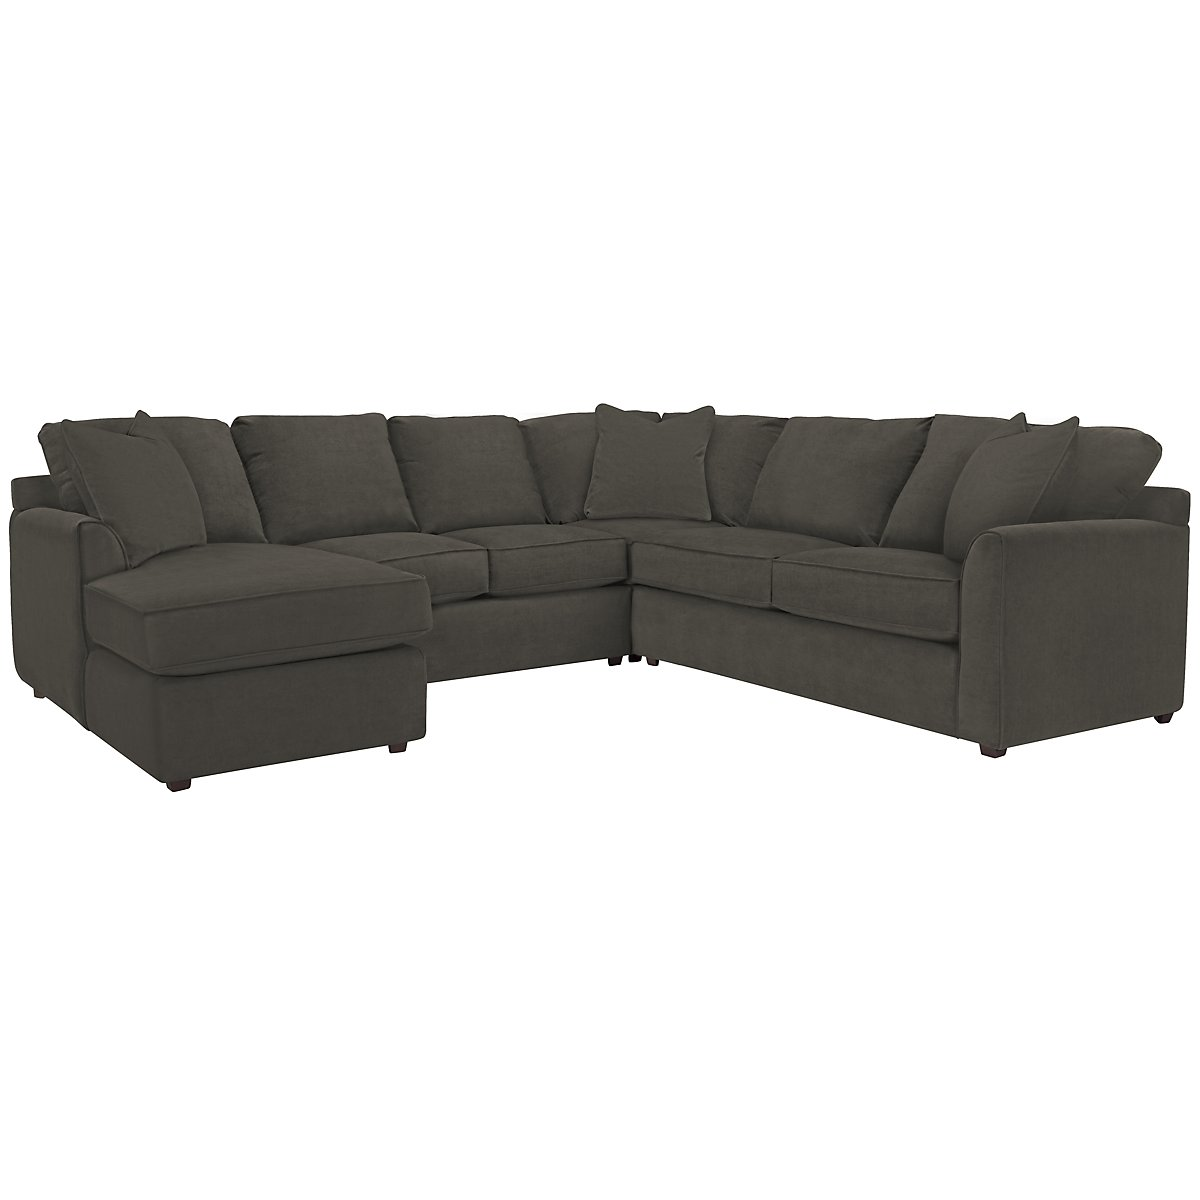 Express3 Dark Gray Microfiber Small Left Chaise Sectional